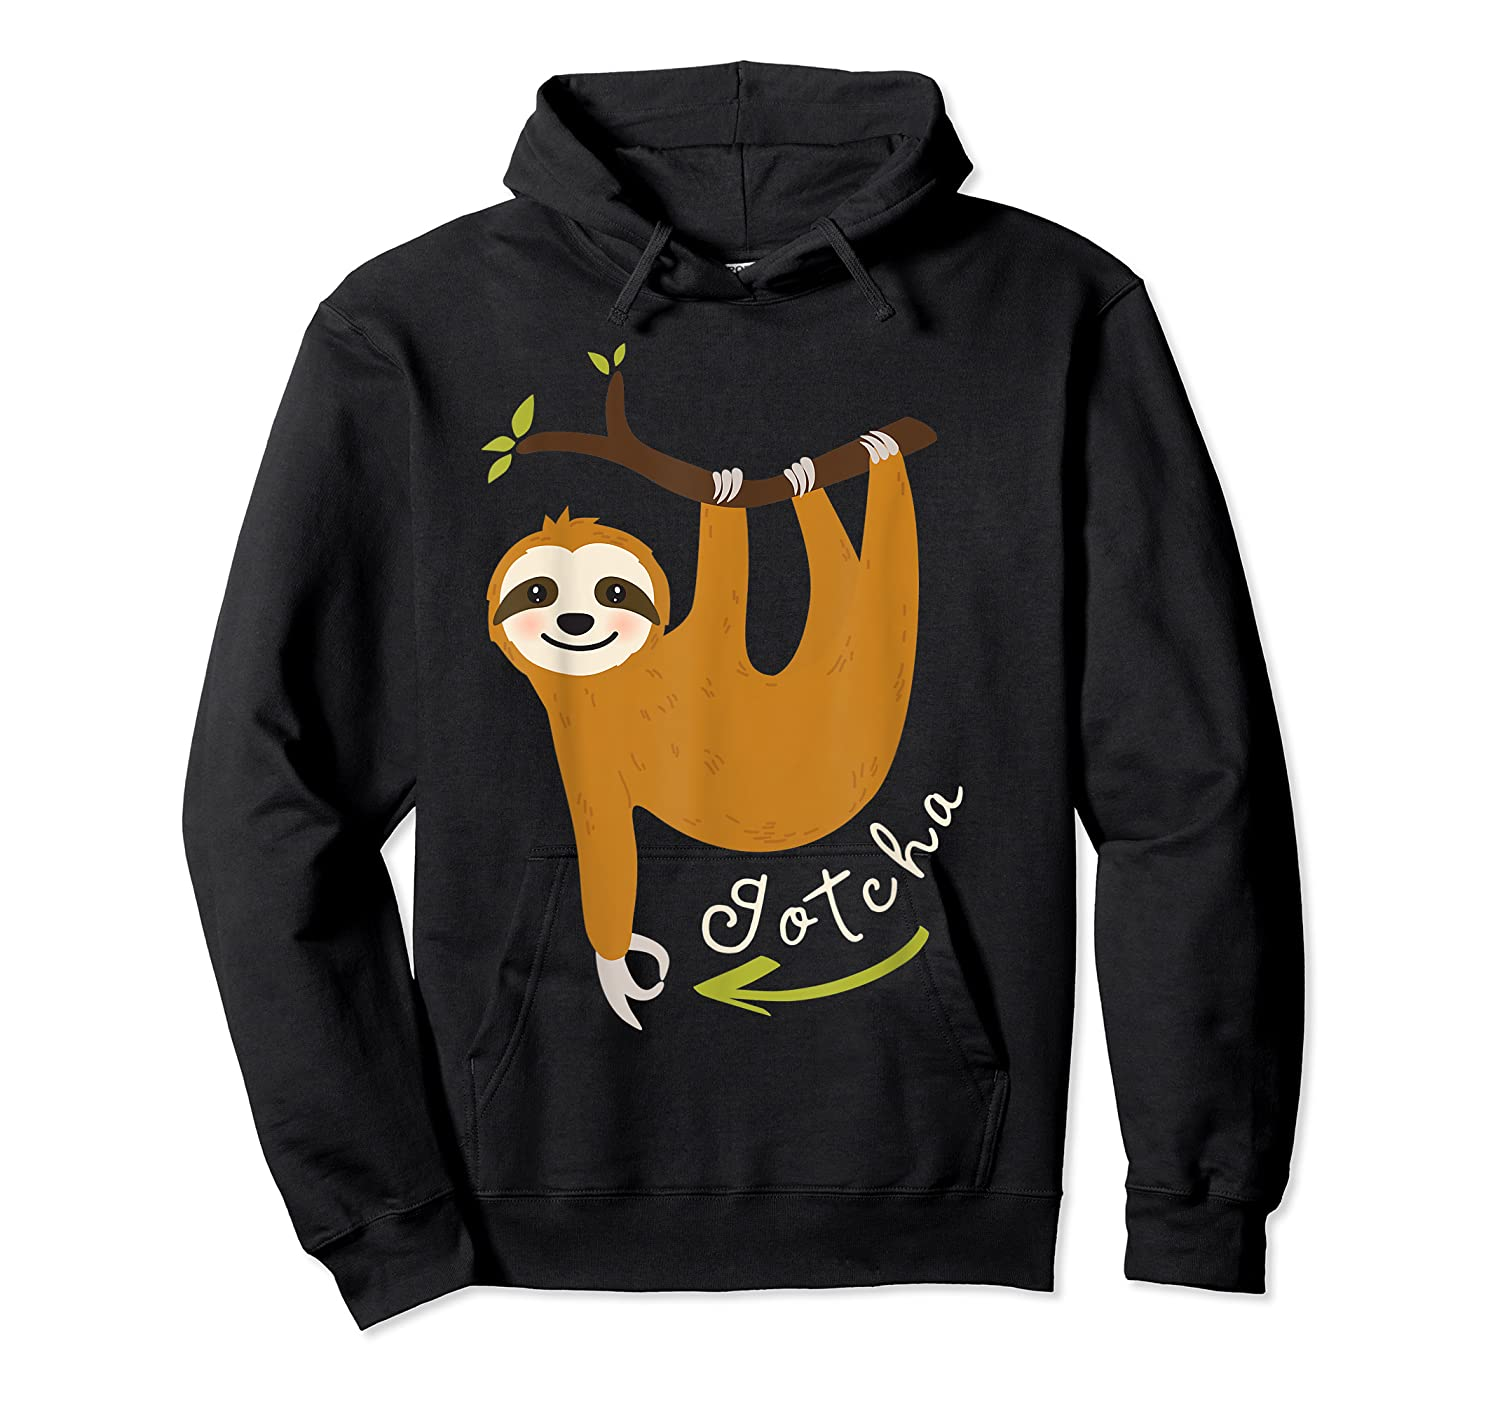 Finger Circle Game Cute Sloth Funny Made You Look Prank T-shirt Unisex Pullover Hoodie